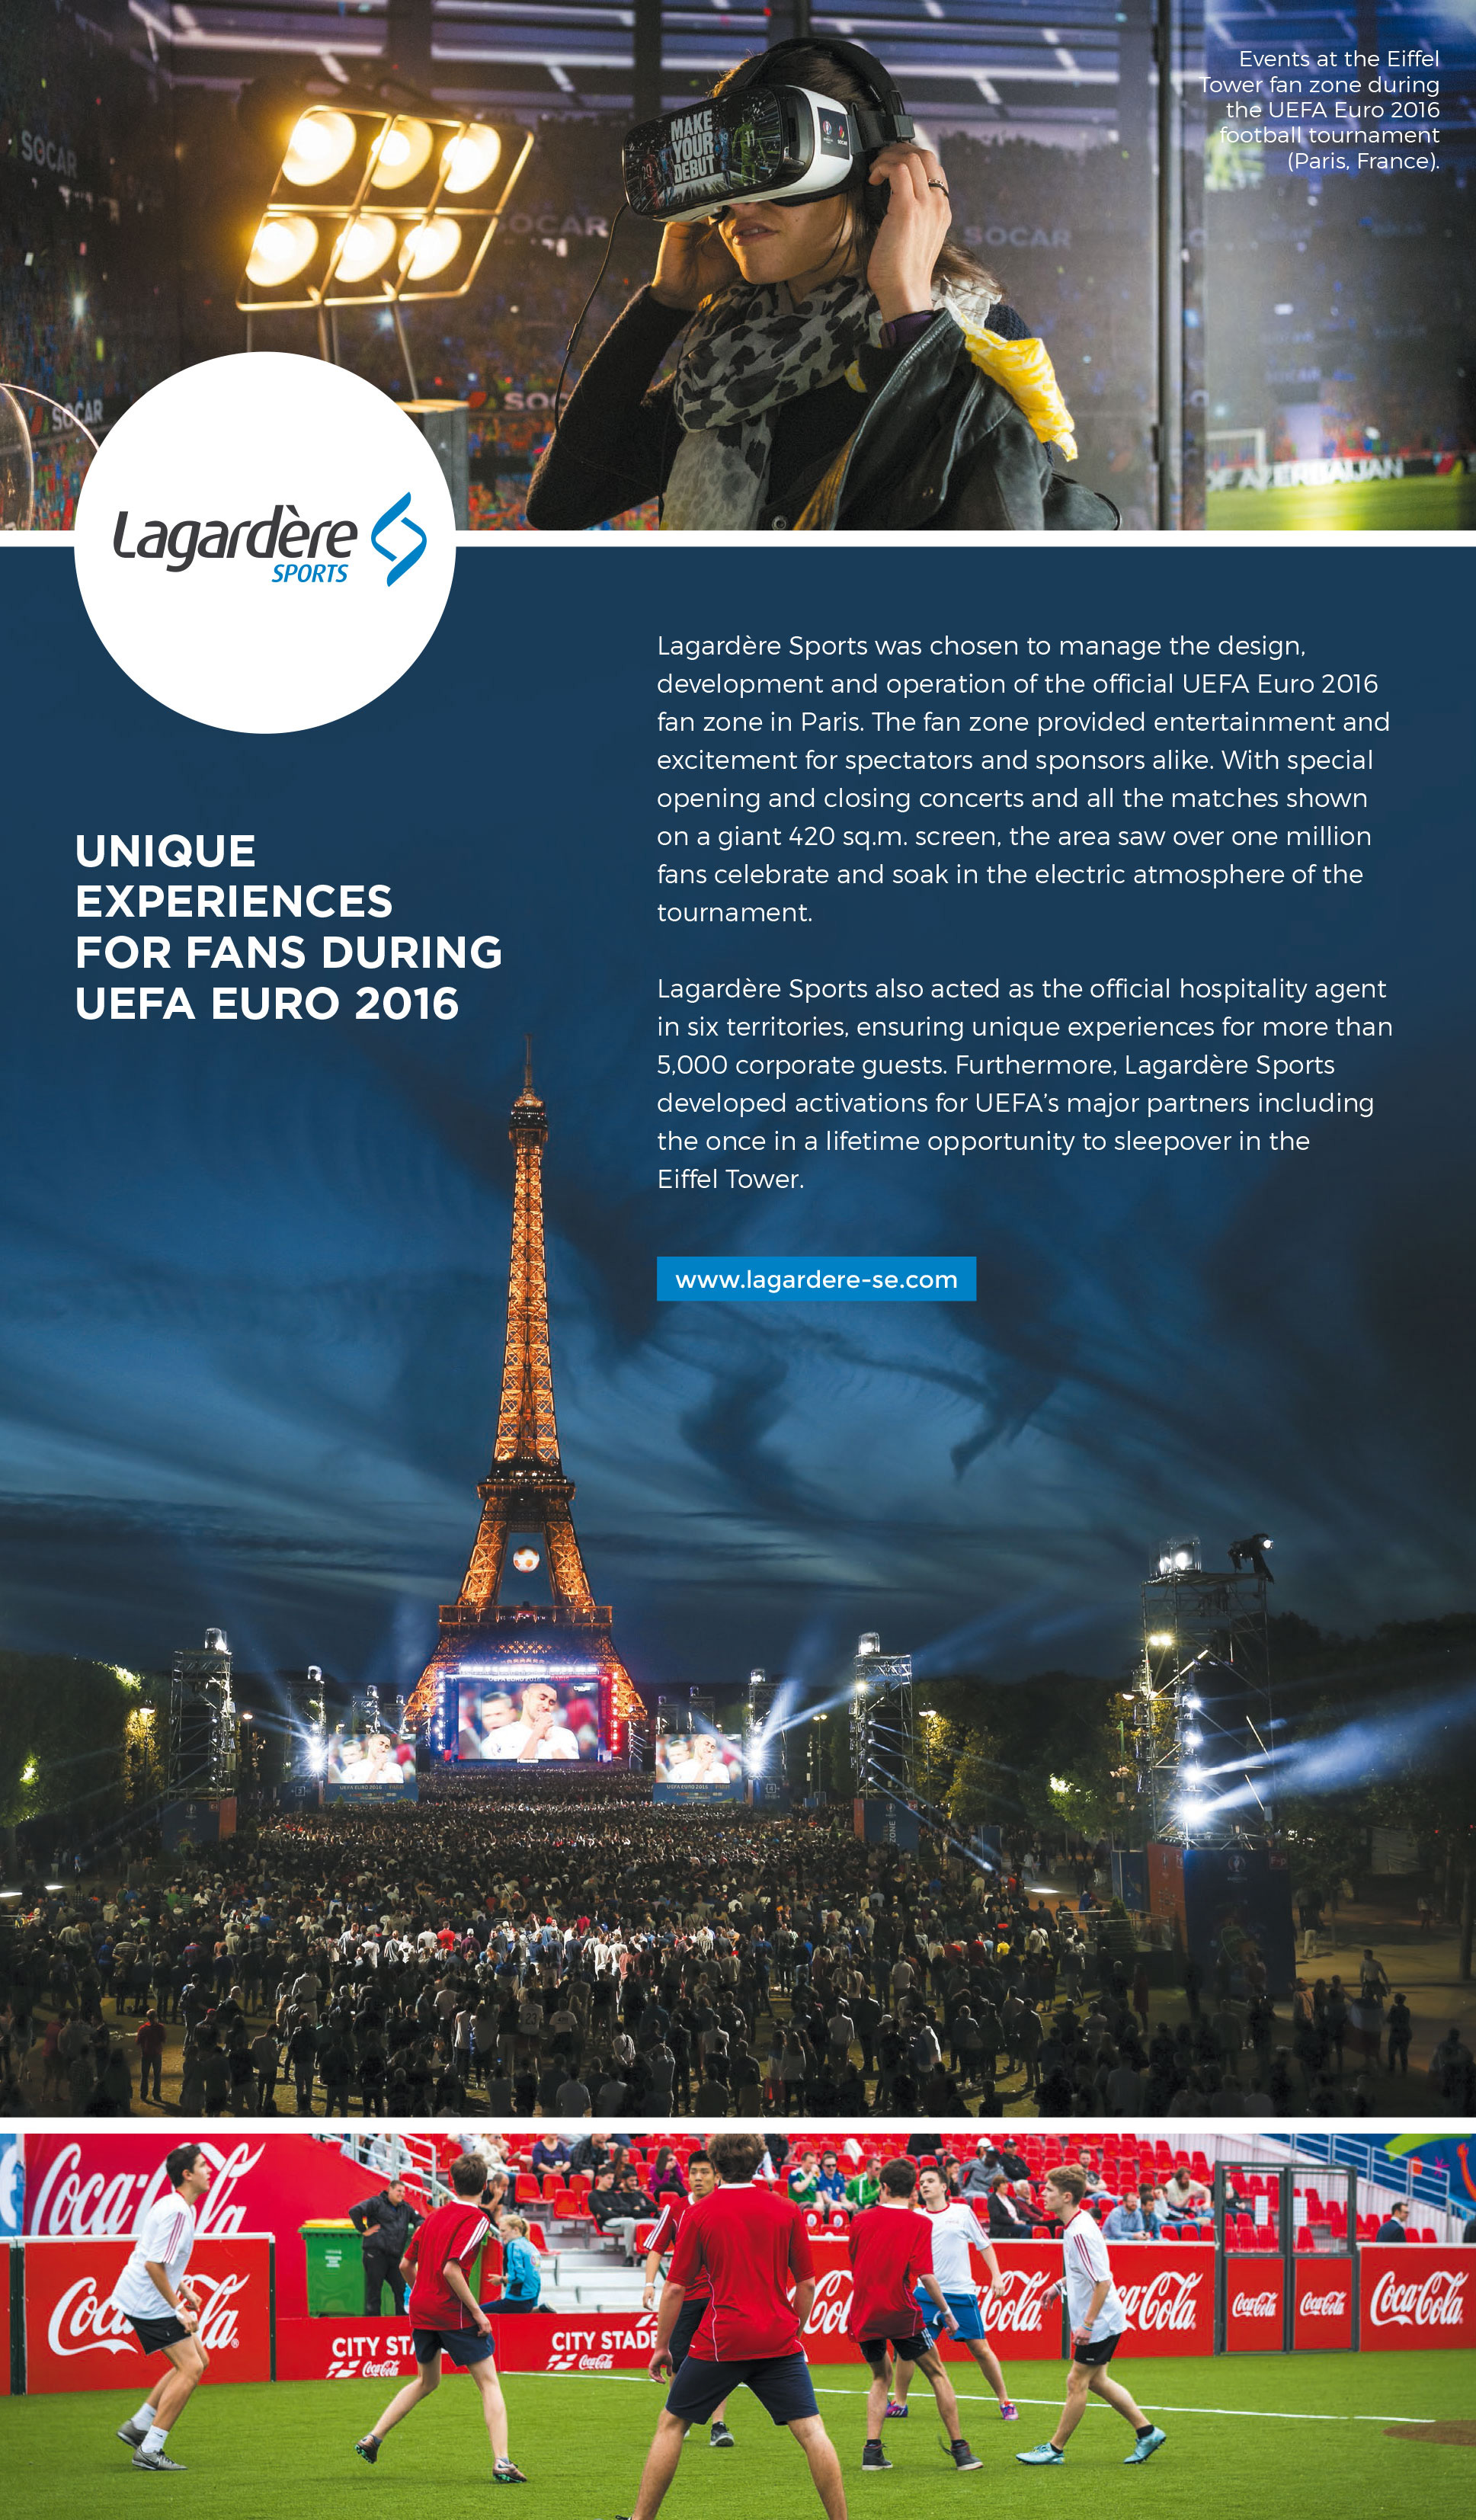 Events at the Eiffel Tower fan zone during the UEFA Euro 2016 football tournament (Paris, France)